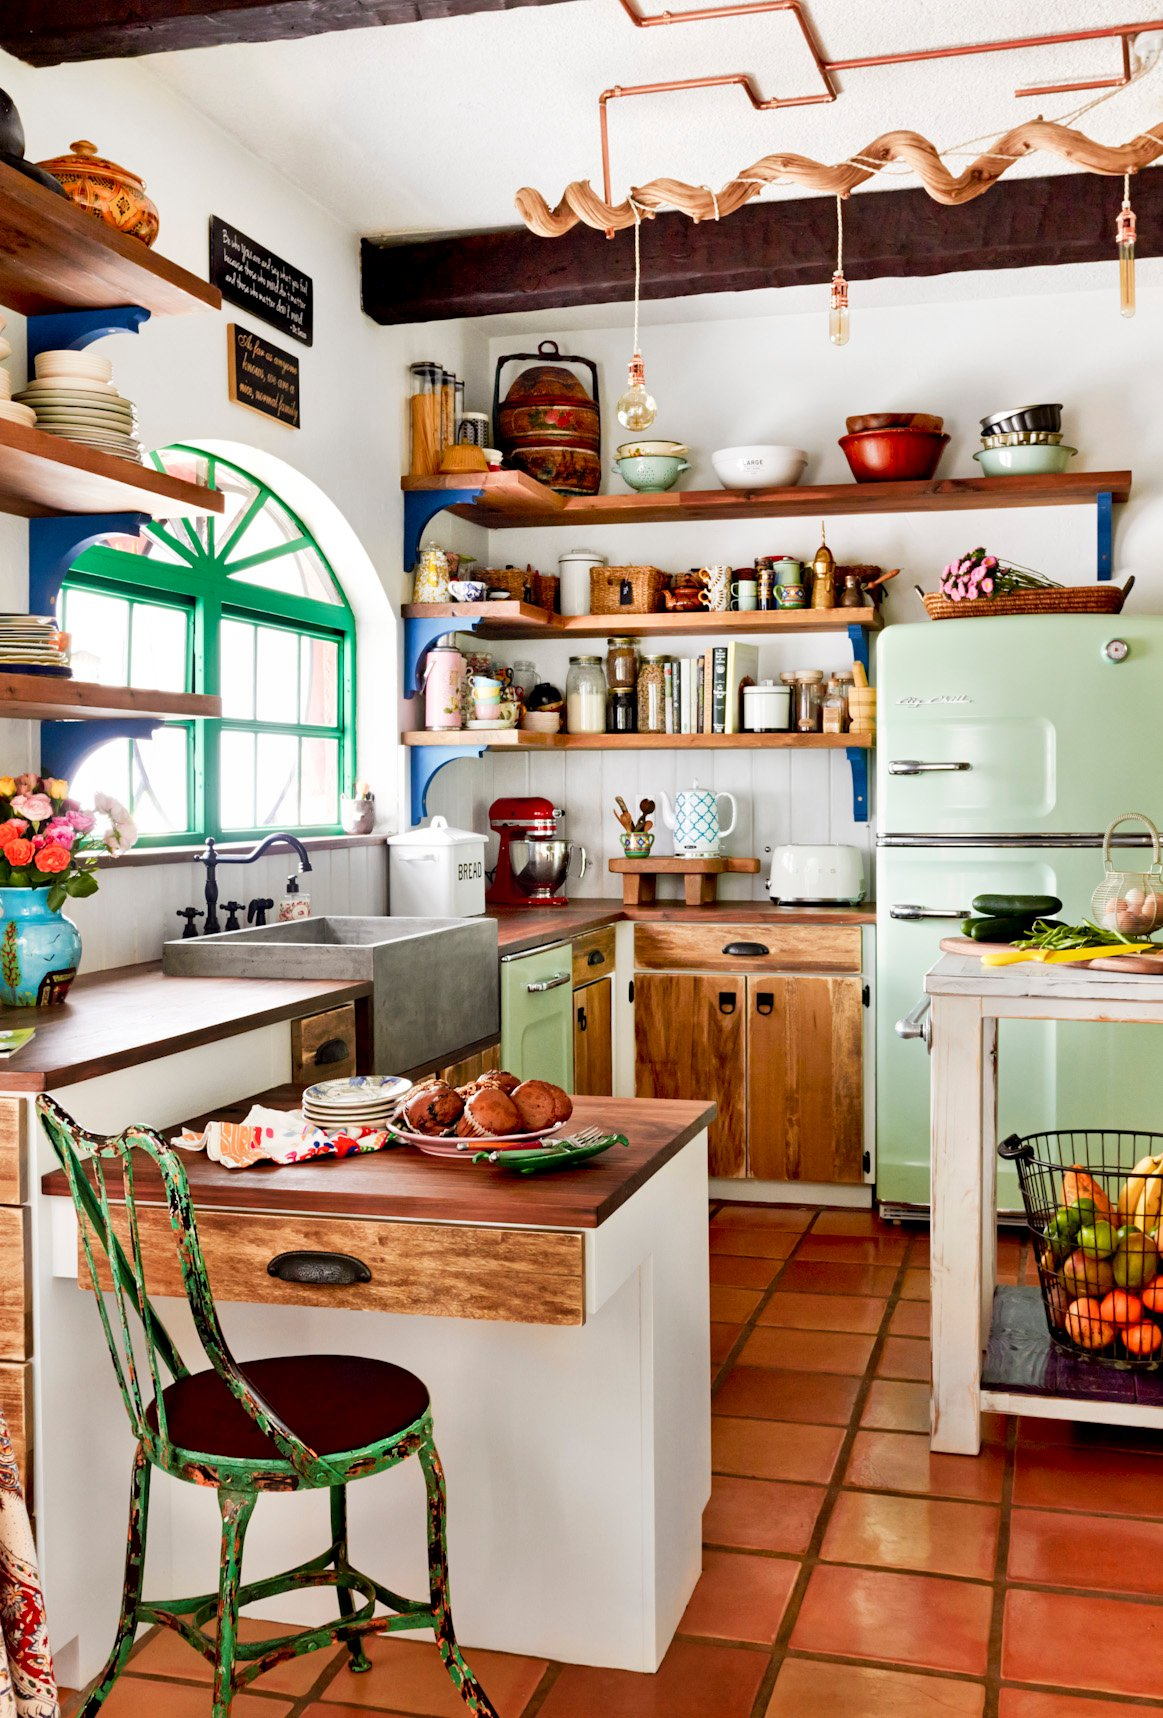 Merveilleux This Quant Little Farmhouse Style Kitchen On A Horse Ranch In Florida Is  Cozy And Colorful. A Big Chill Retro Refrigerator And Dishwasher In Mint  Green Add ...